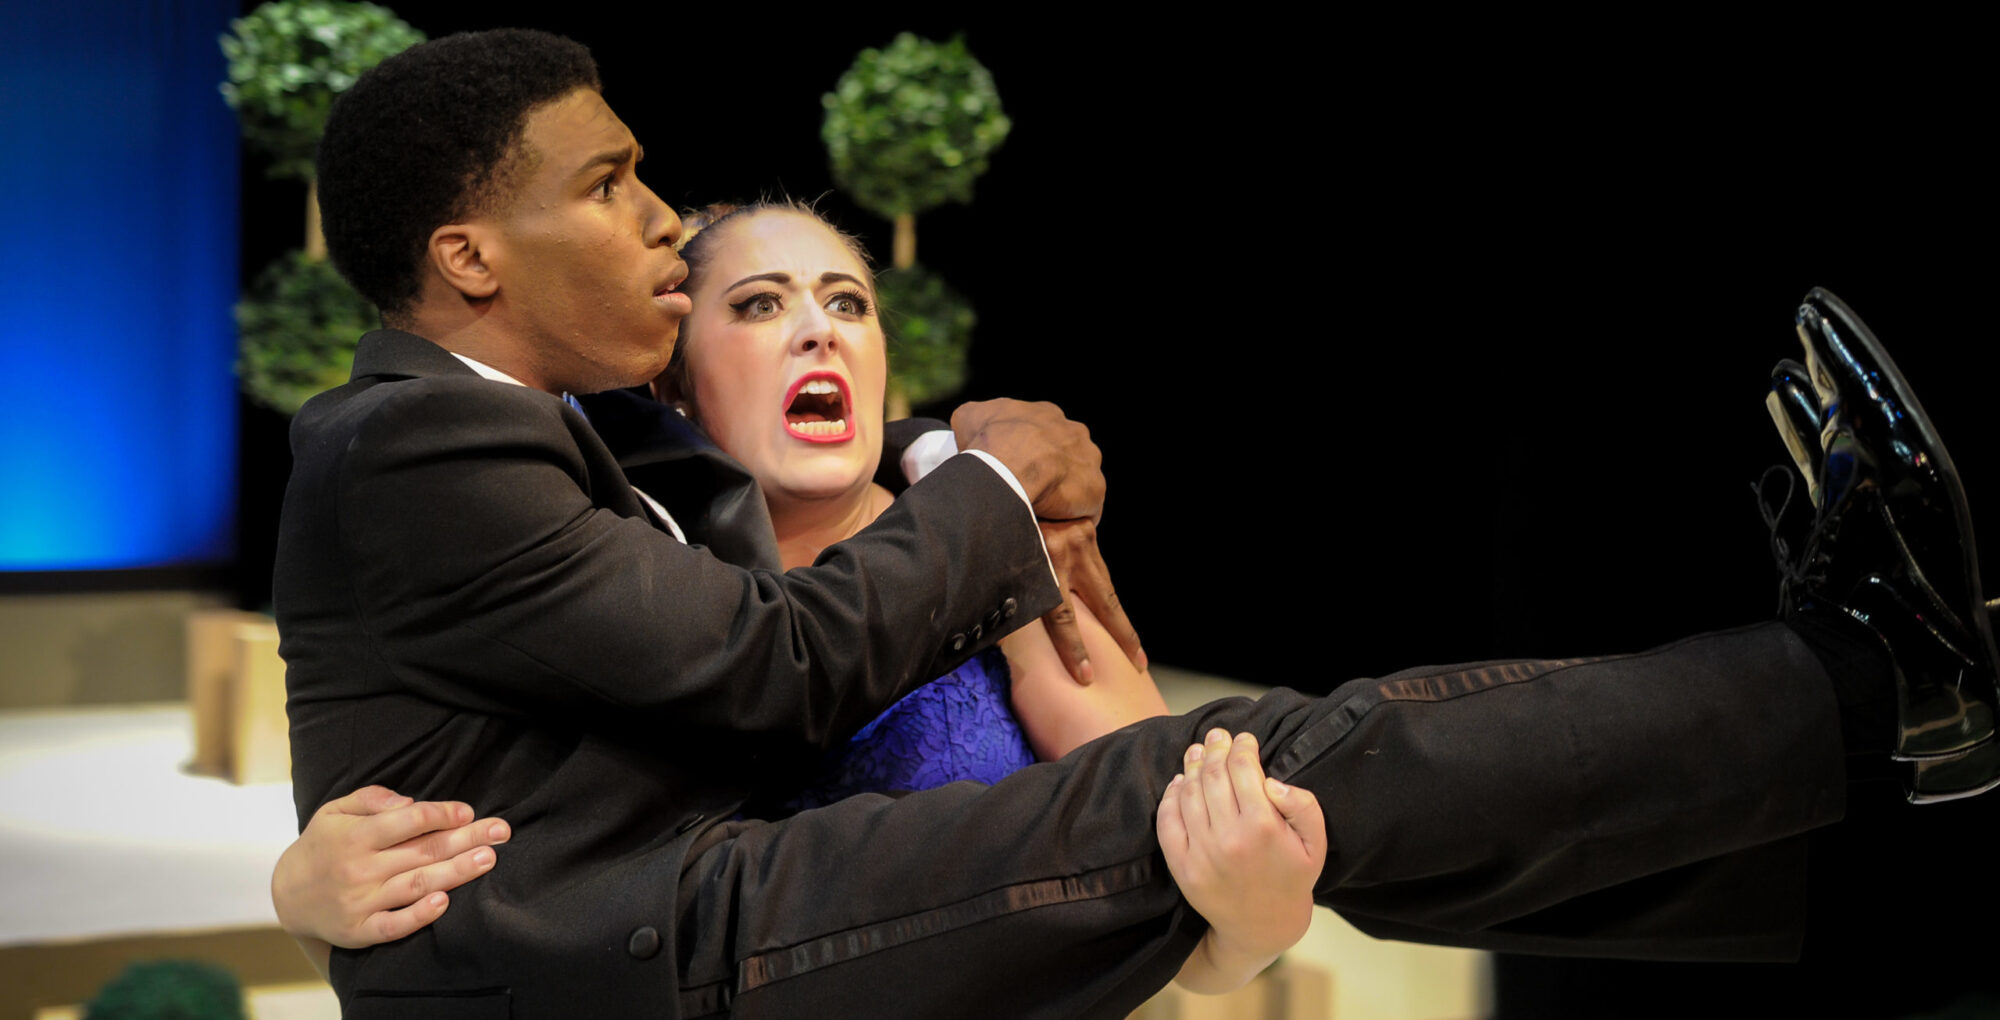 Woman holding a man during a theatrical scene.